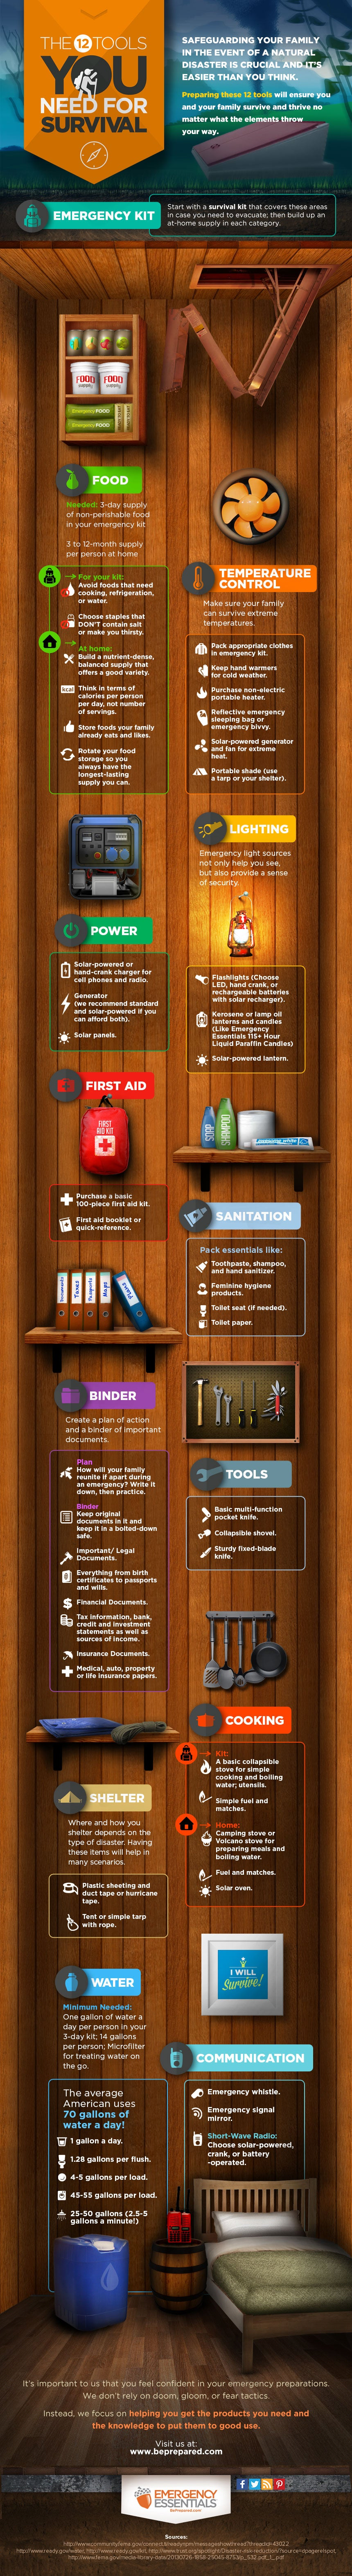 12 tools you need for survival infographic